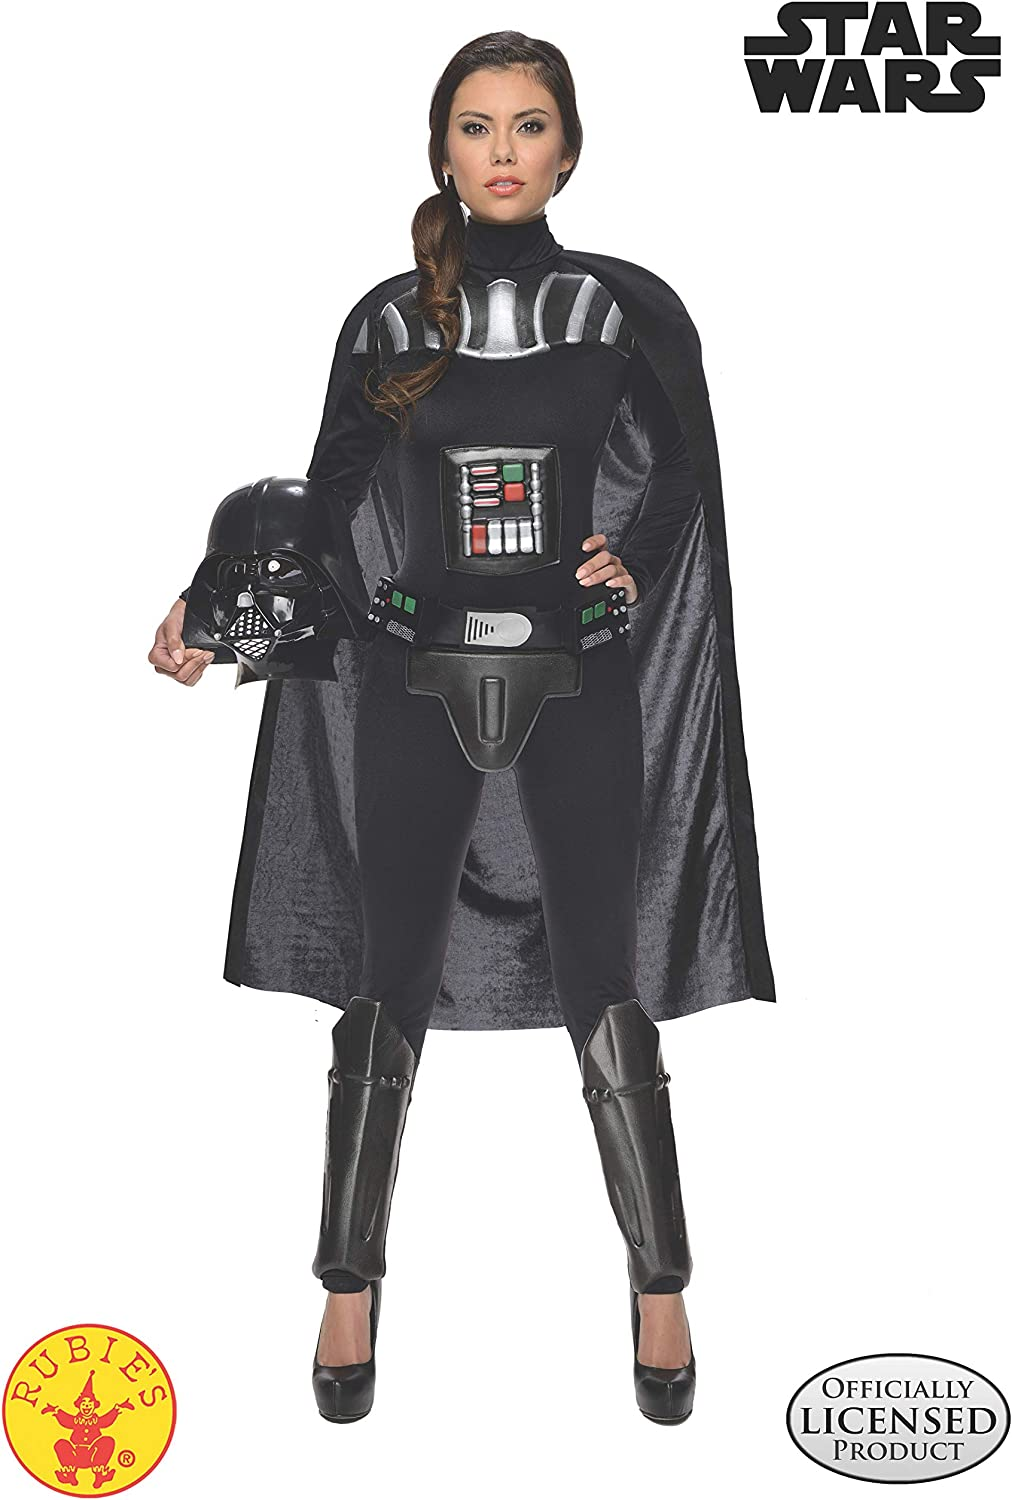 Star Wars - Disfraz de Darth Vader para mujer, Talla S adulto ...